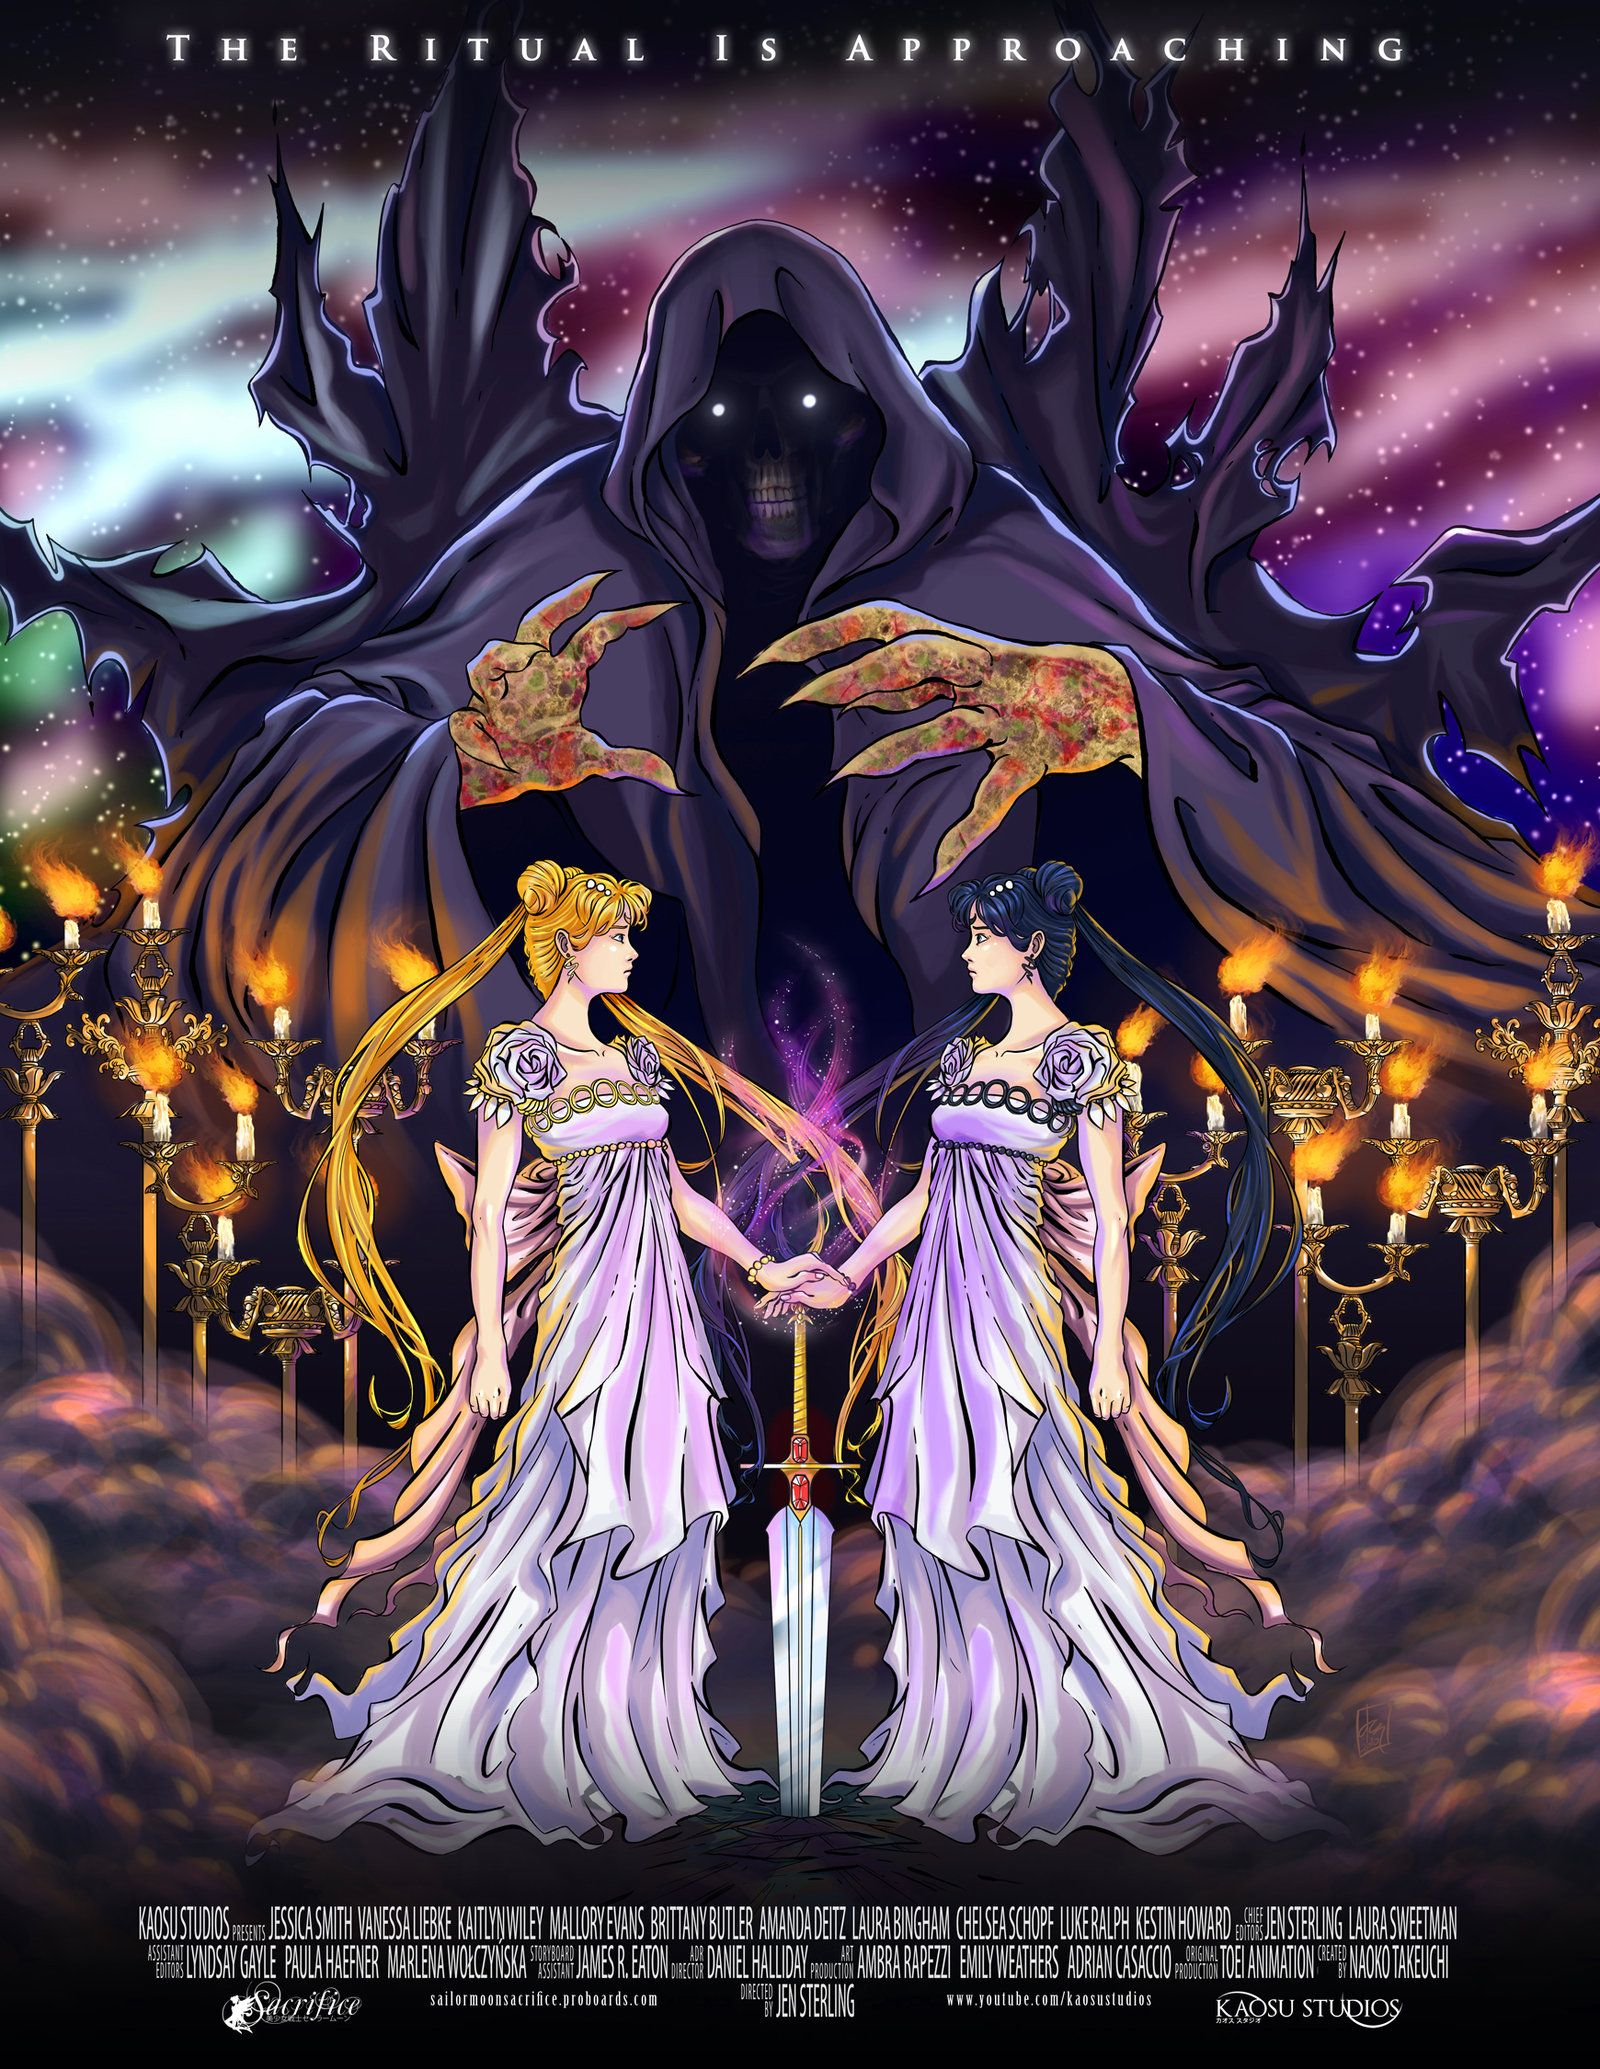 The Ritual Is Approaching by sailormoonsacrifice.deviantart.com on @deviantART